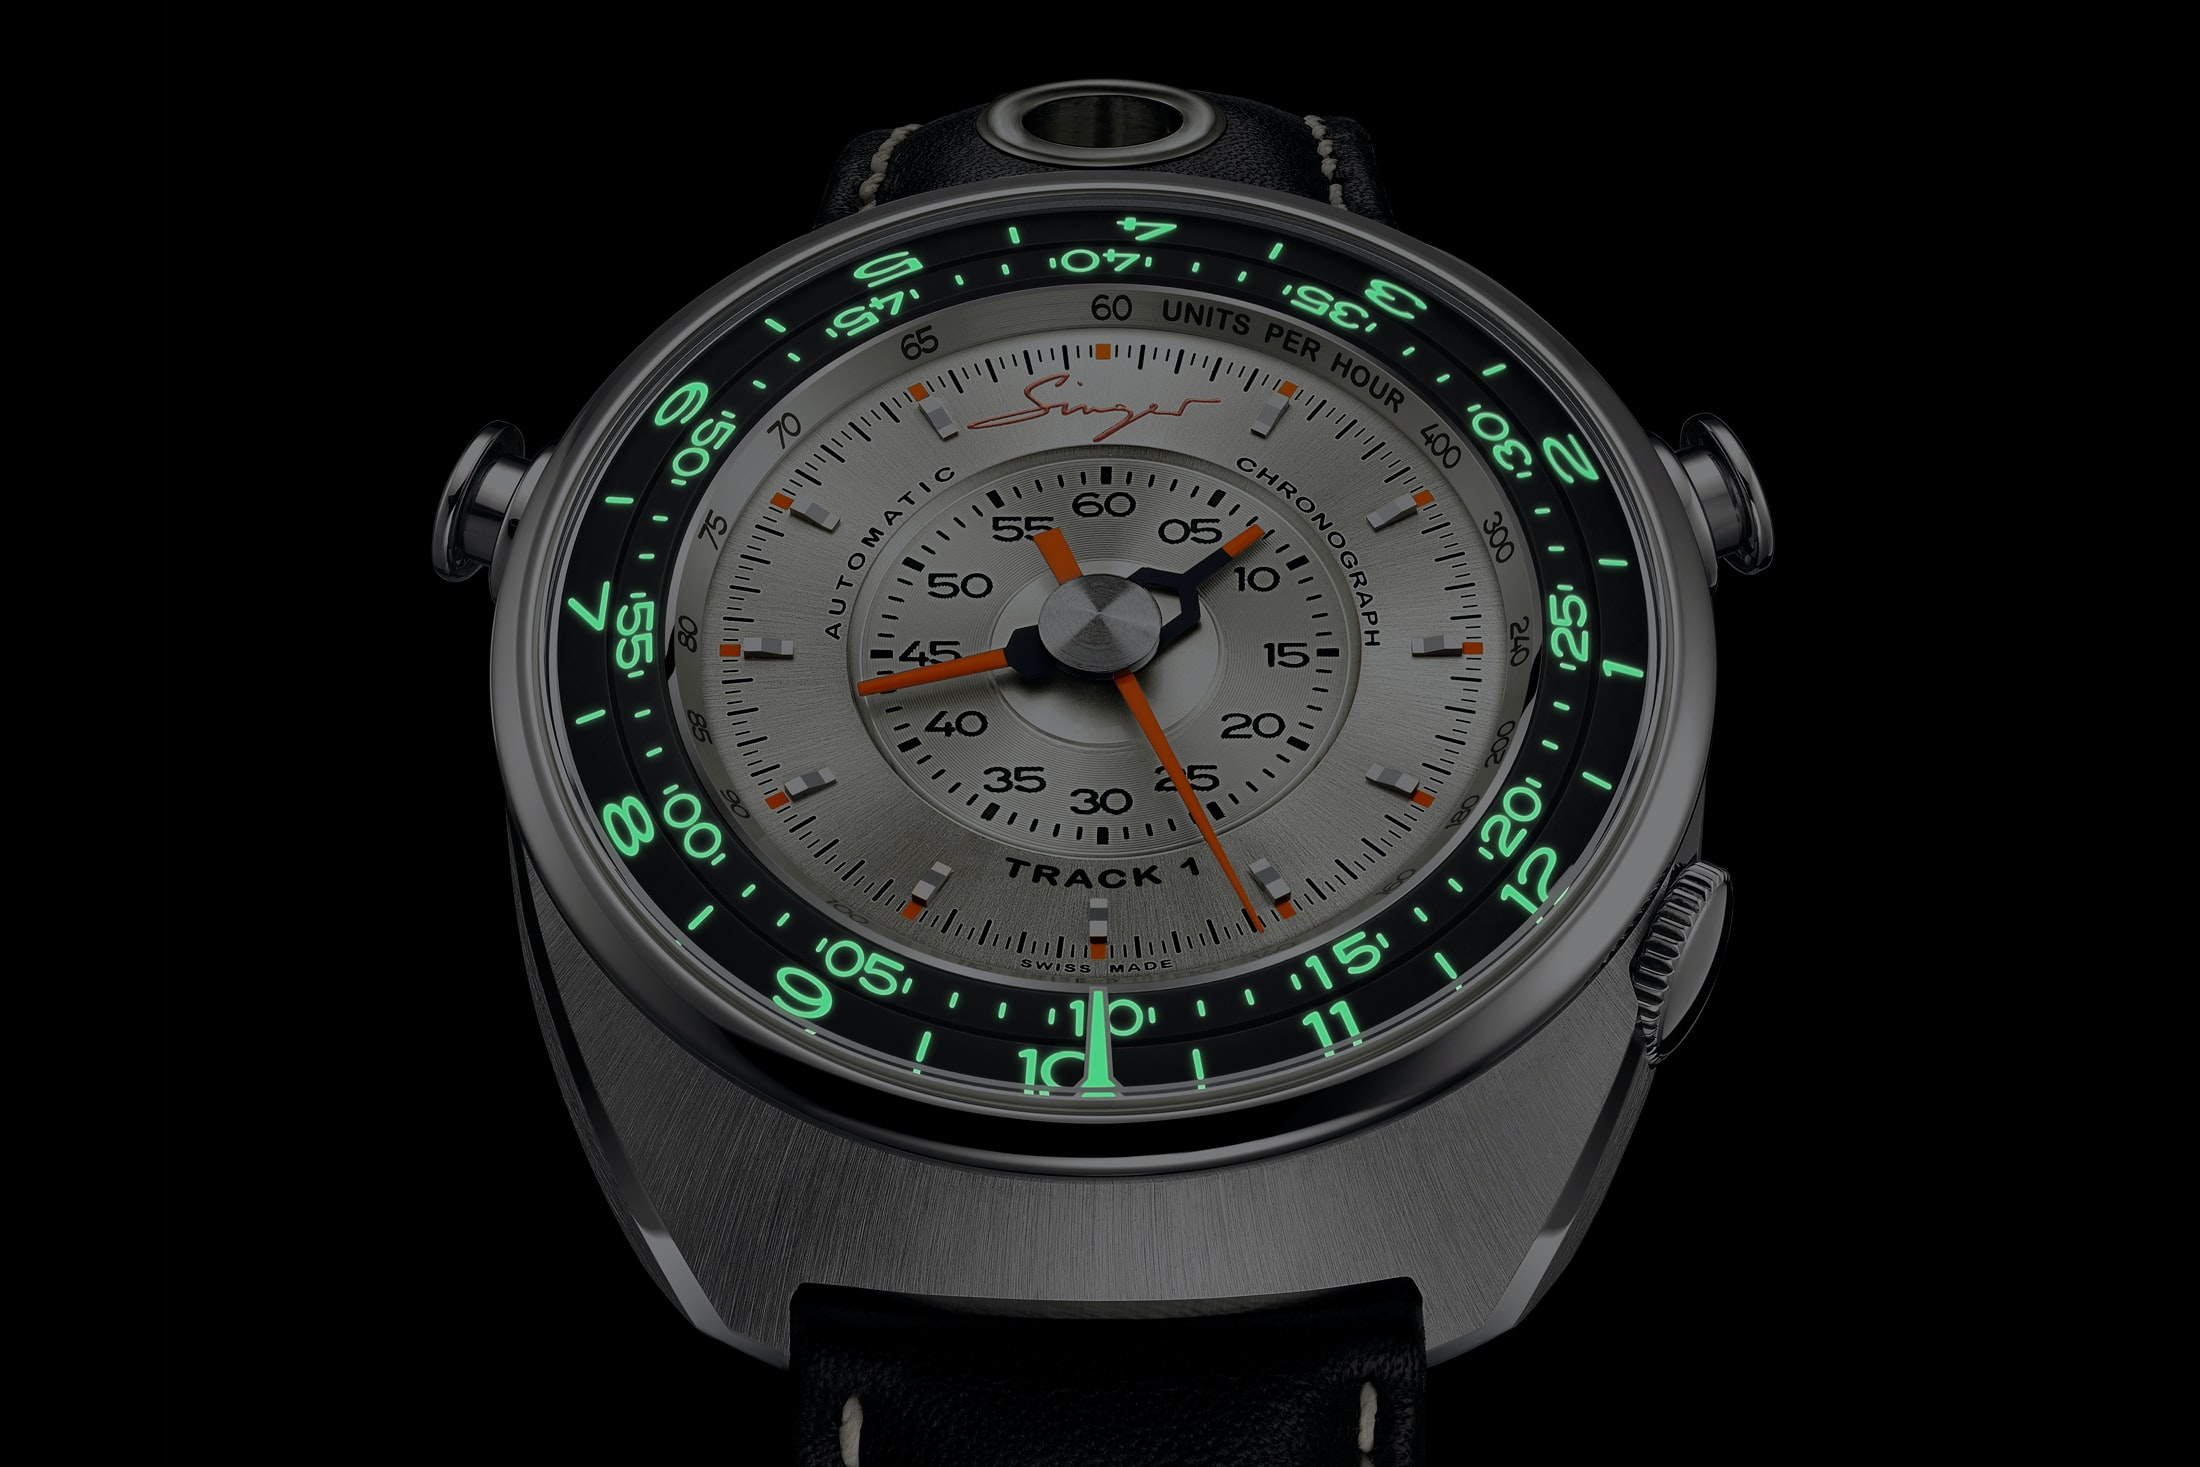 singer track1 chronograph lume shot Introducing: The Singer Track1 Chronograph, Featuring The AgenGraphe Caliber By Jean-Marc Wiederrecht Introducing: The Singer Track1 Chronograph, Featuring The AgenGraphe Caliber By Jean-Marc Wiederrecht singer 02